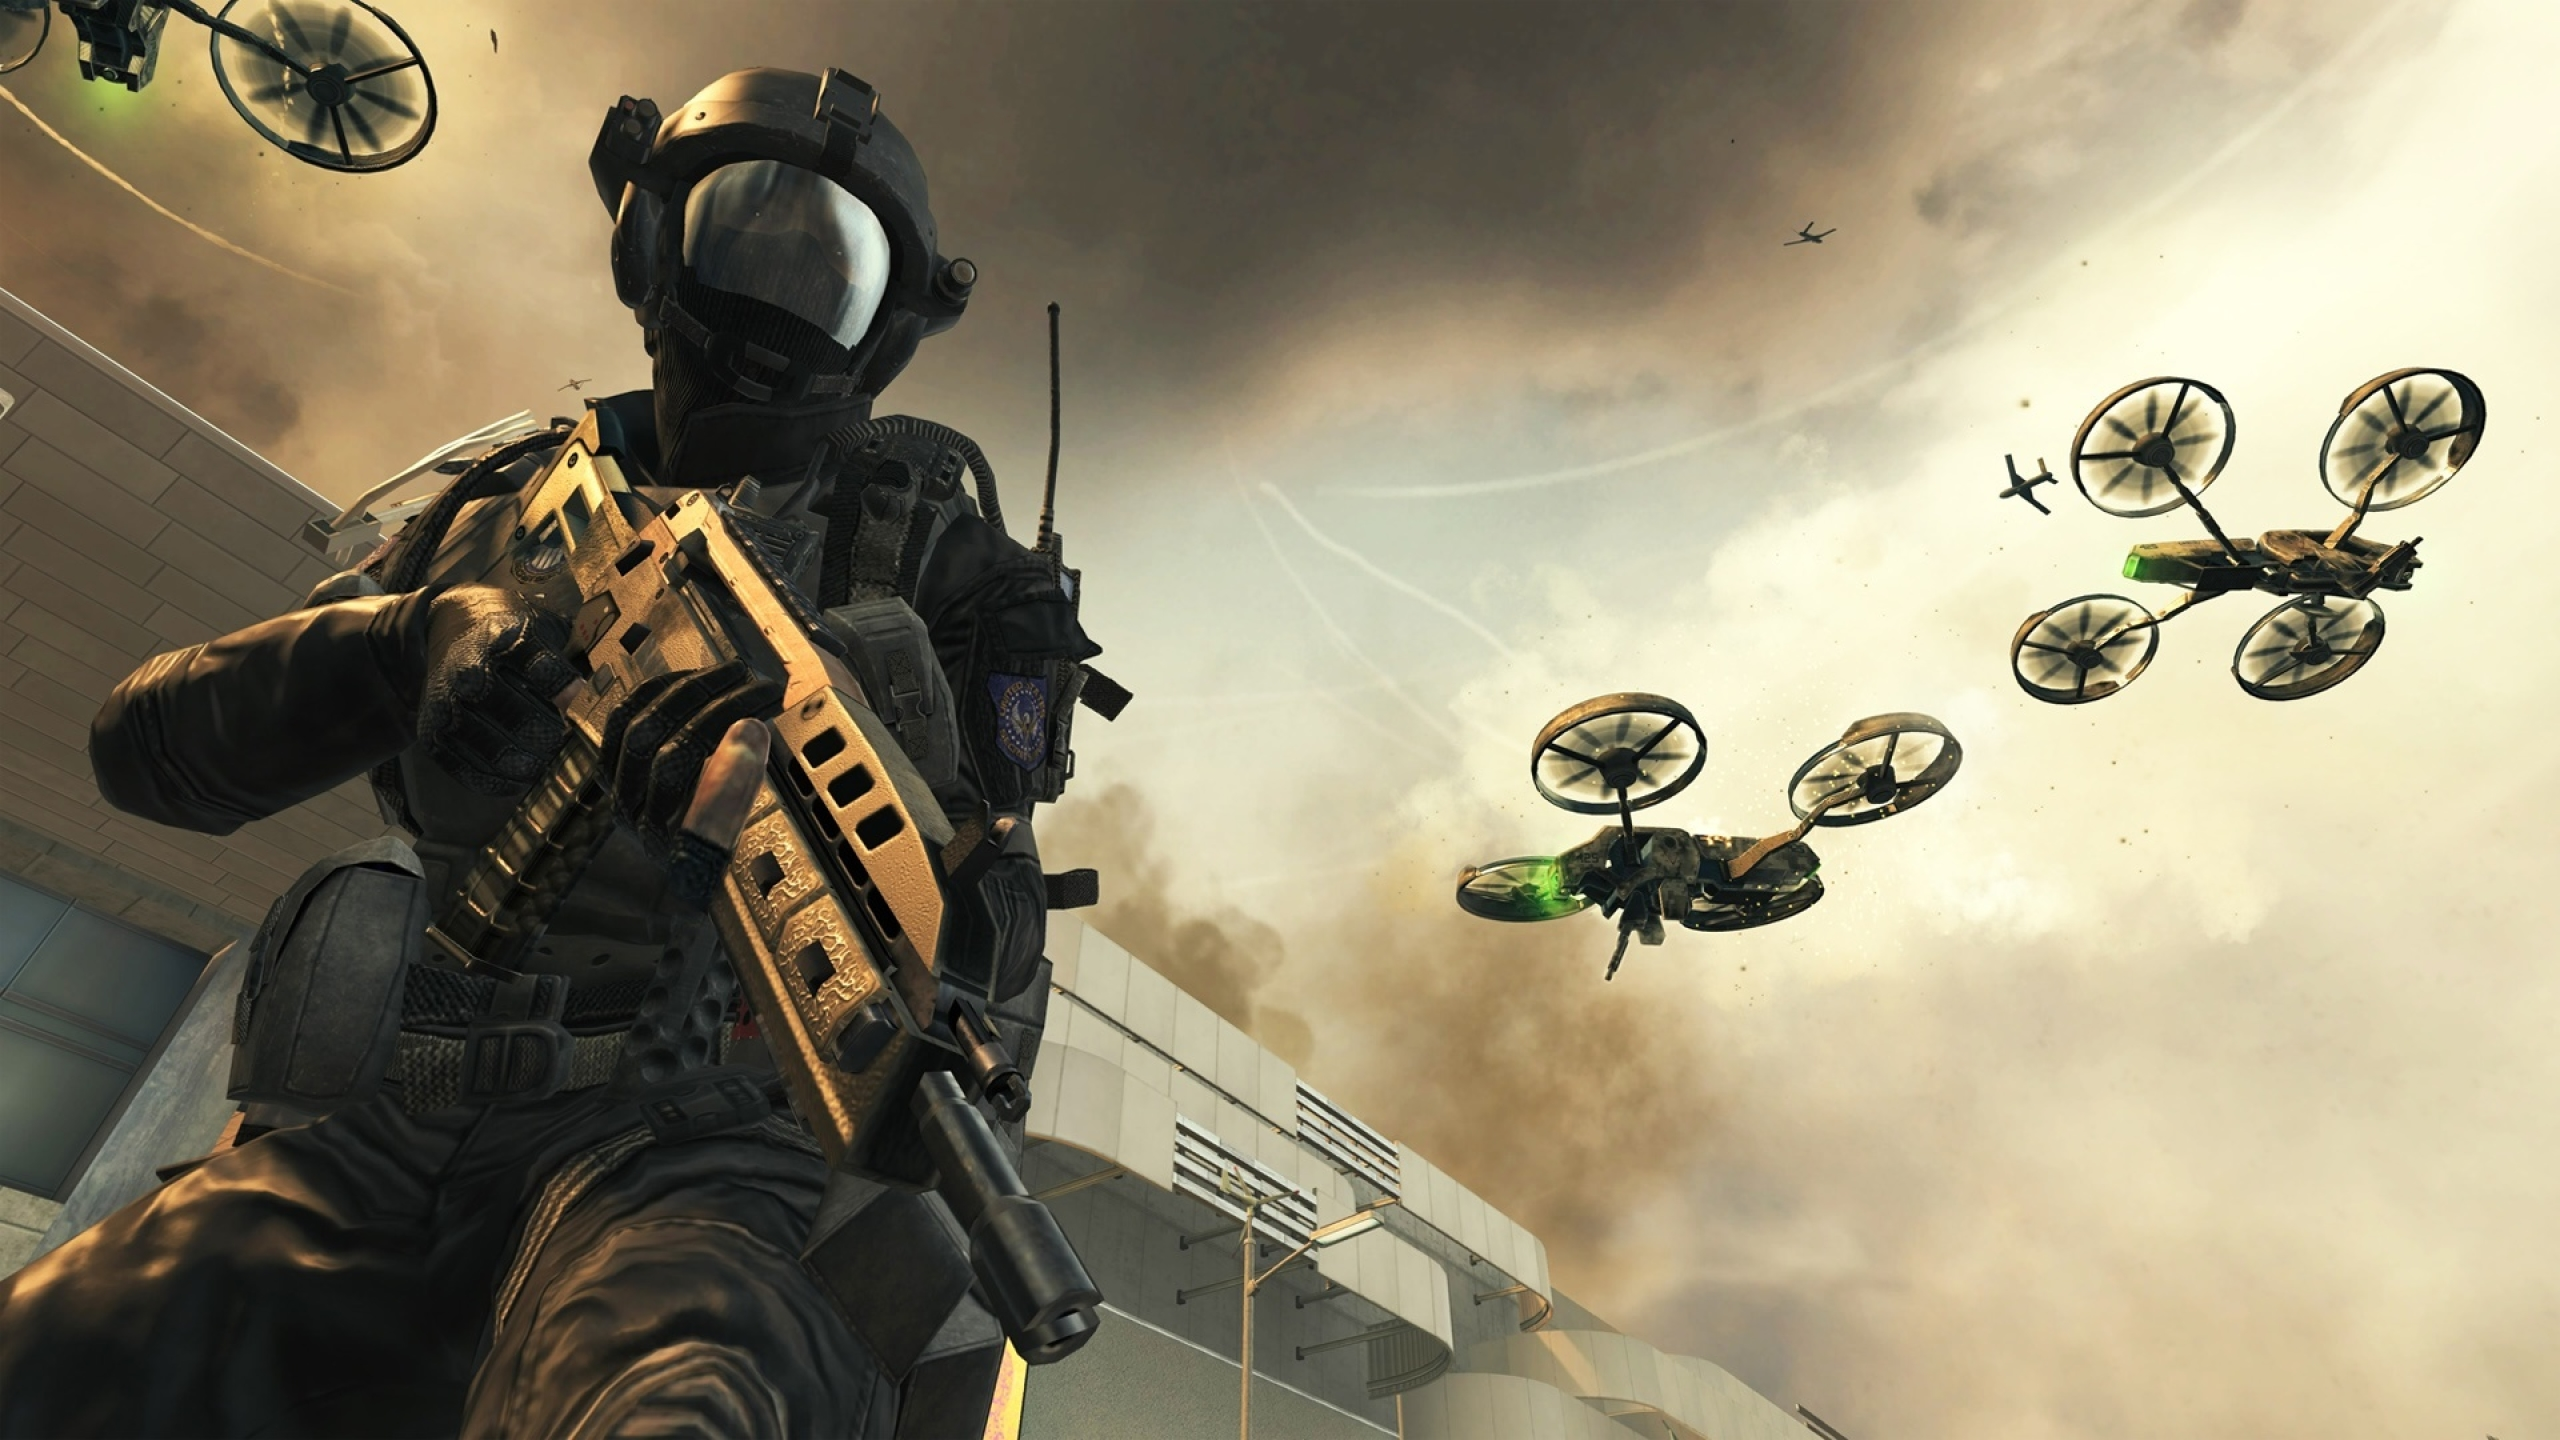 2560x1440 Call Of Duty Black Ops 2 Game 1440p Resolution